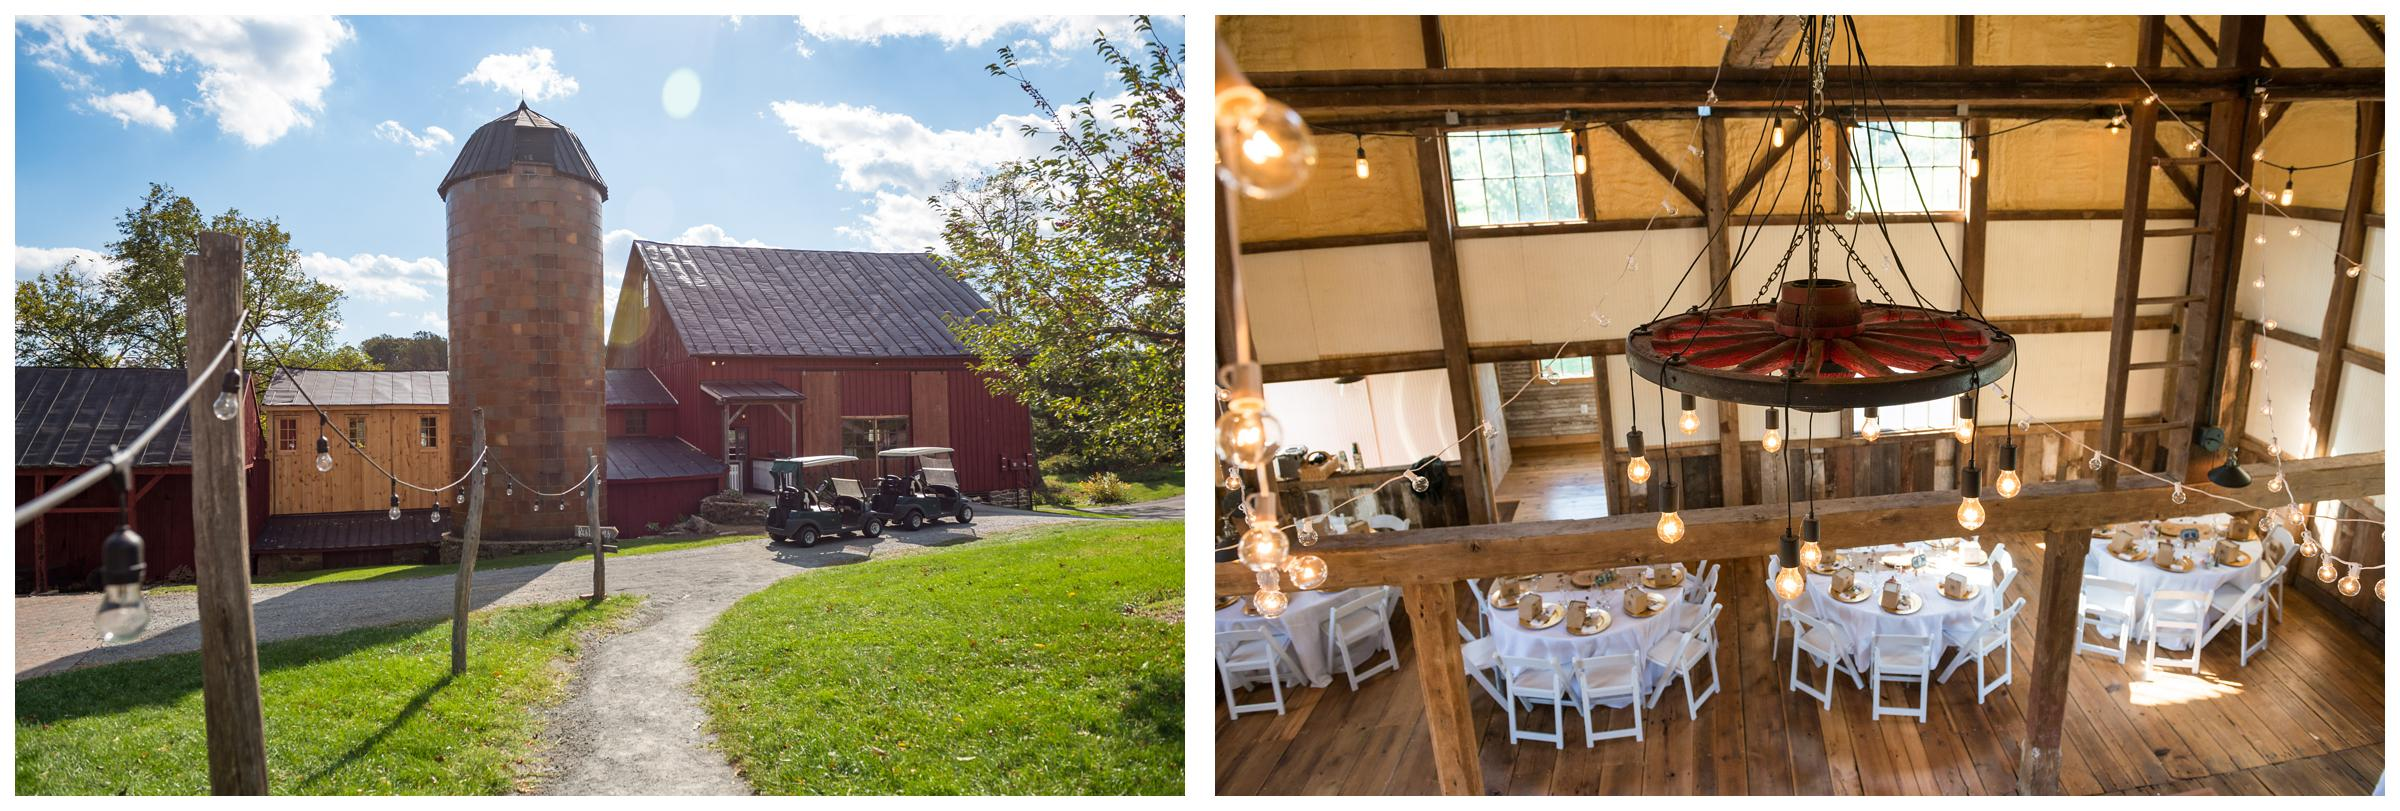 Rustic barn wedding reception with edison string lights at Stoneleigh Golf Club in Northern Virginia.